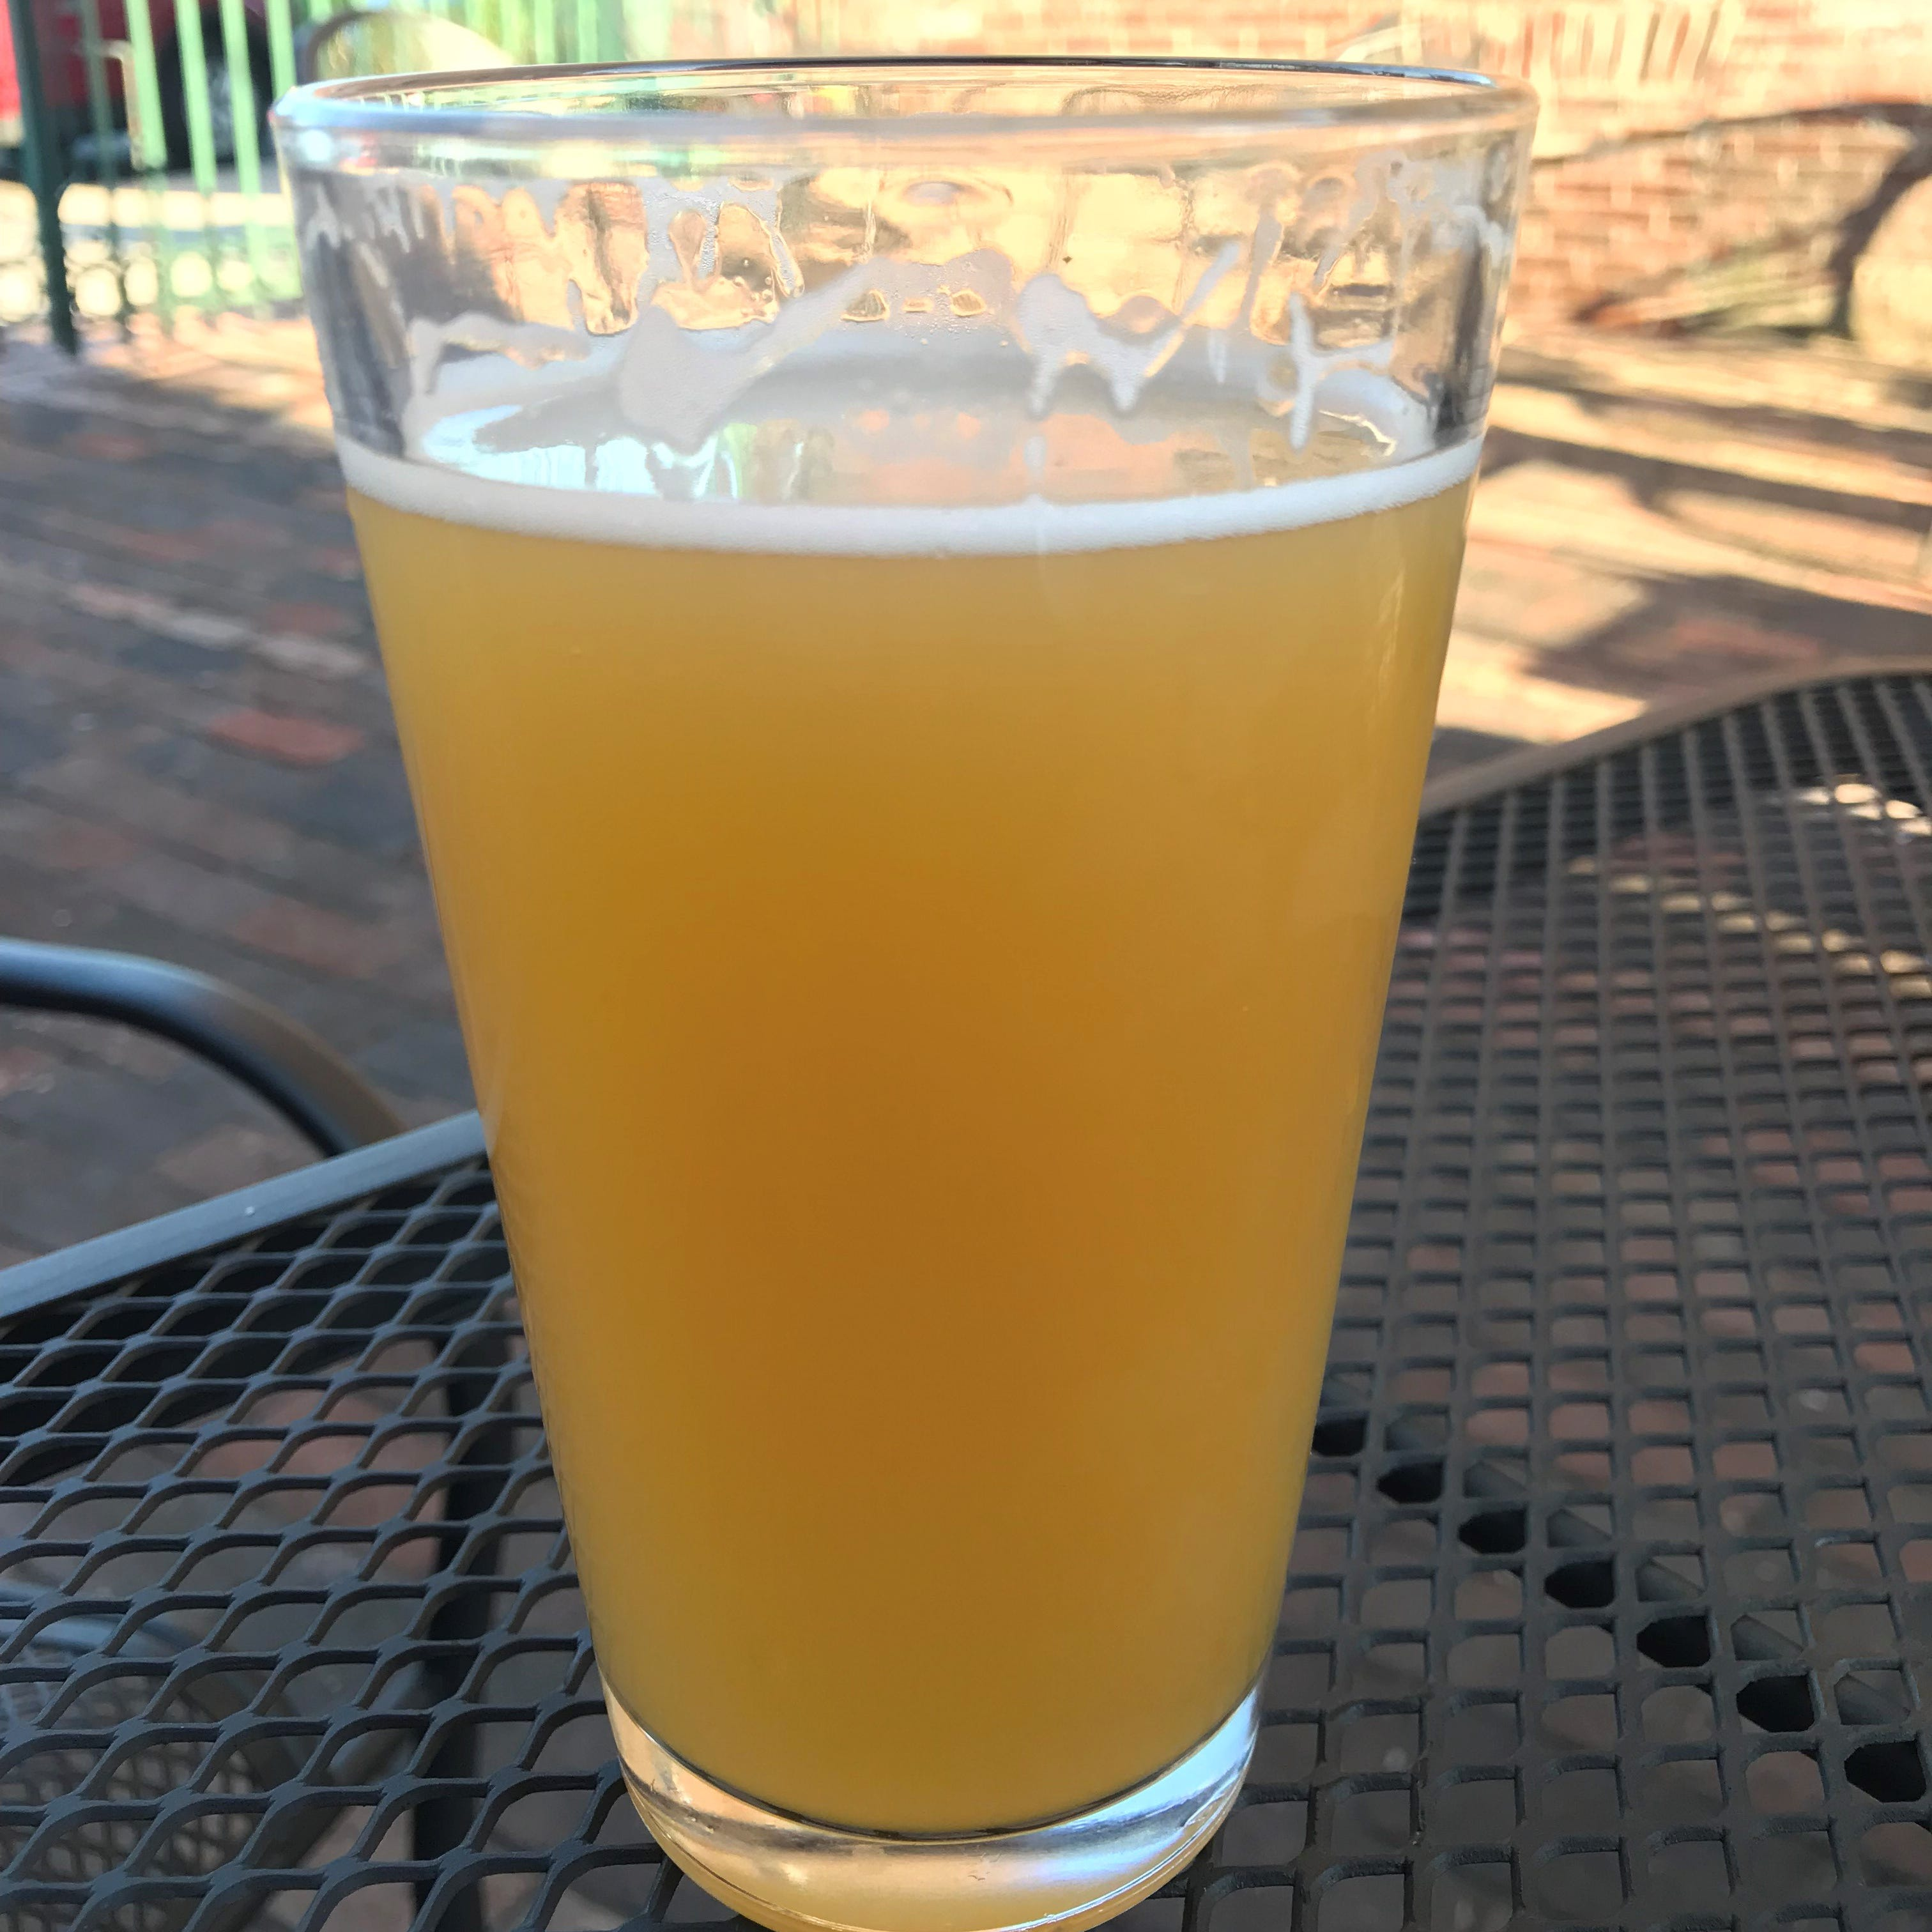 The Phoenix Brewing Co. gears up for IPA Day on Thursday